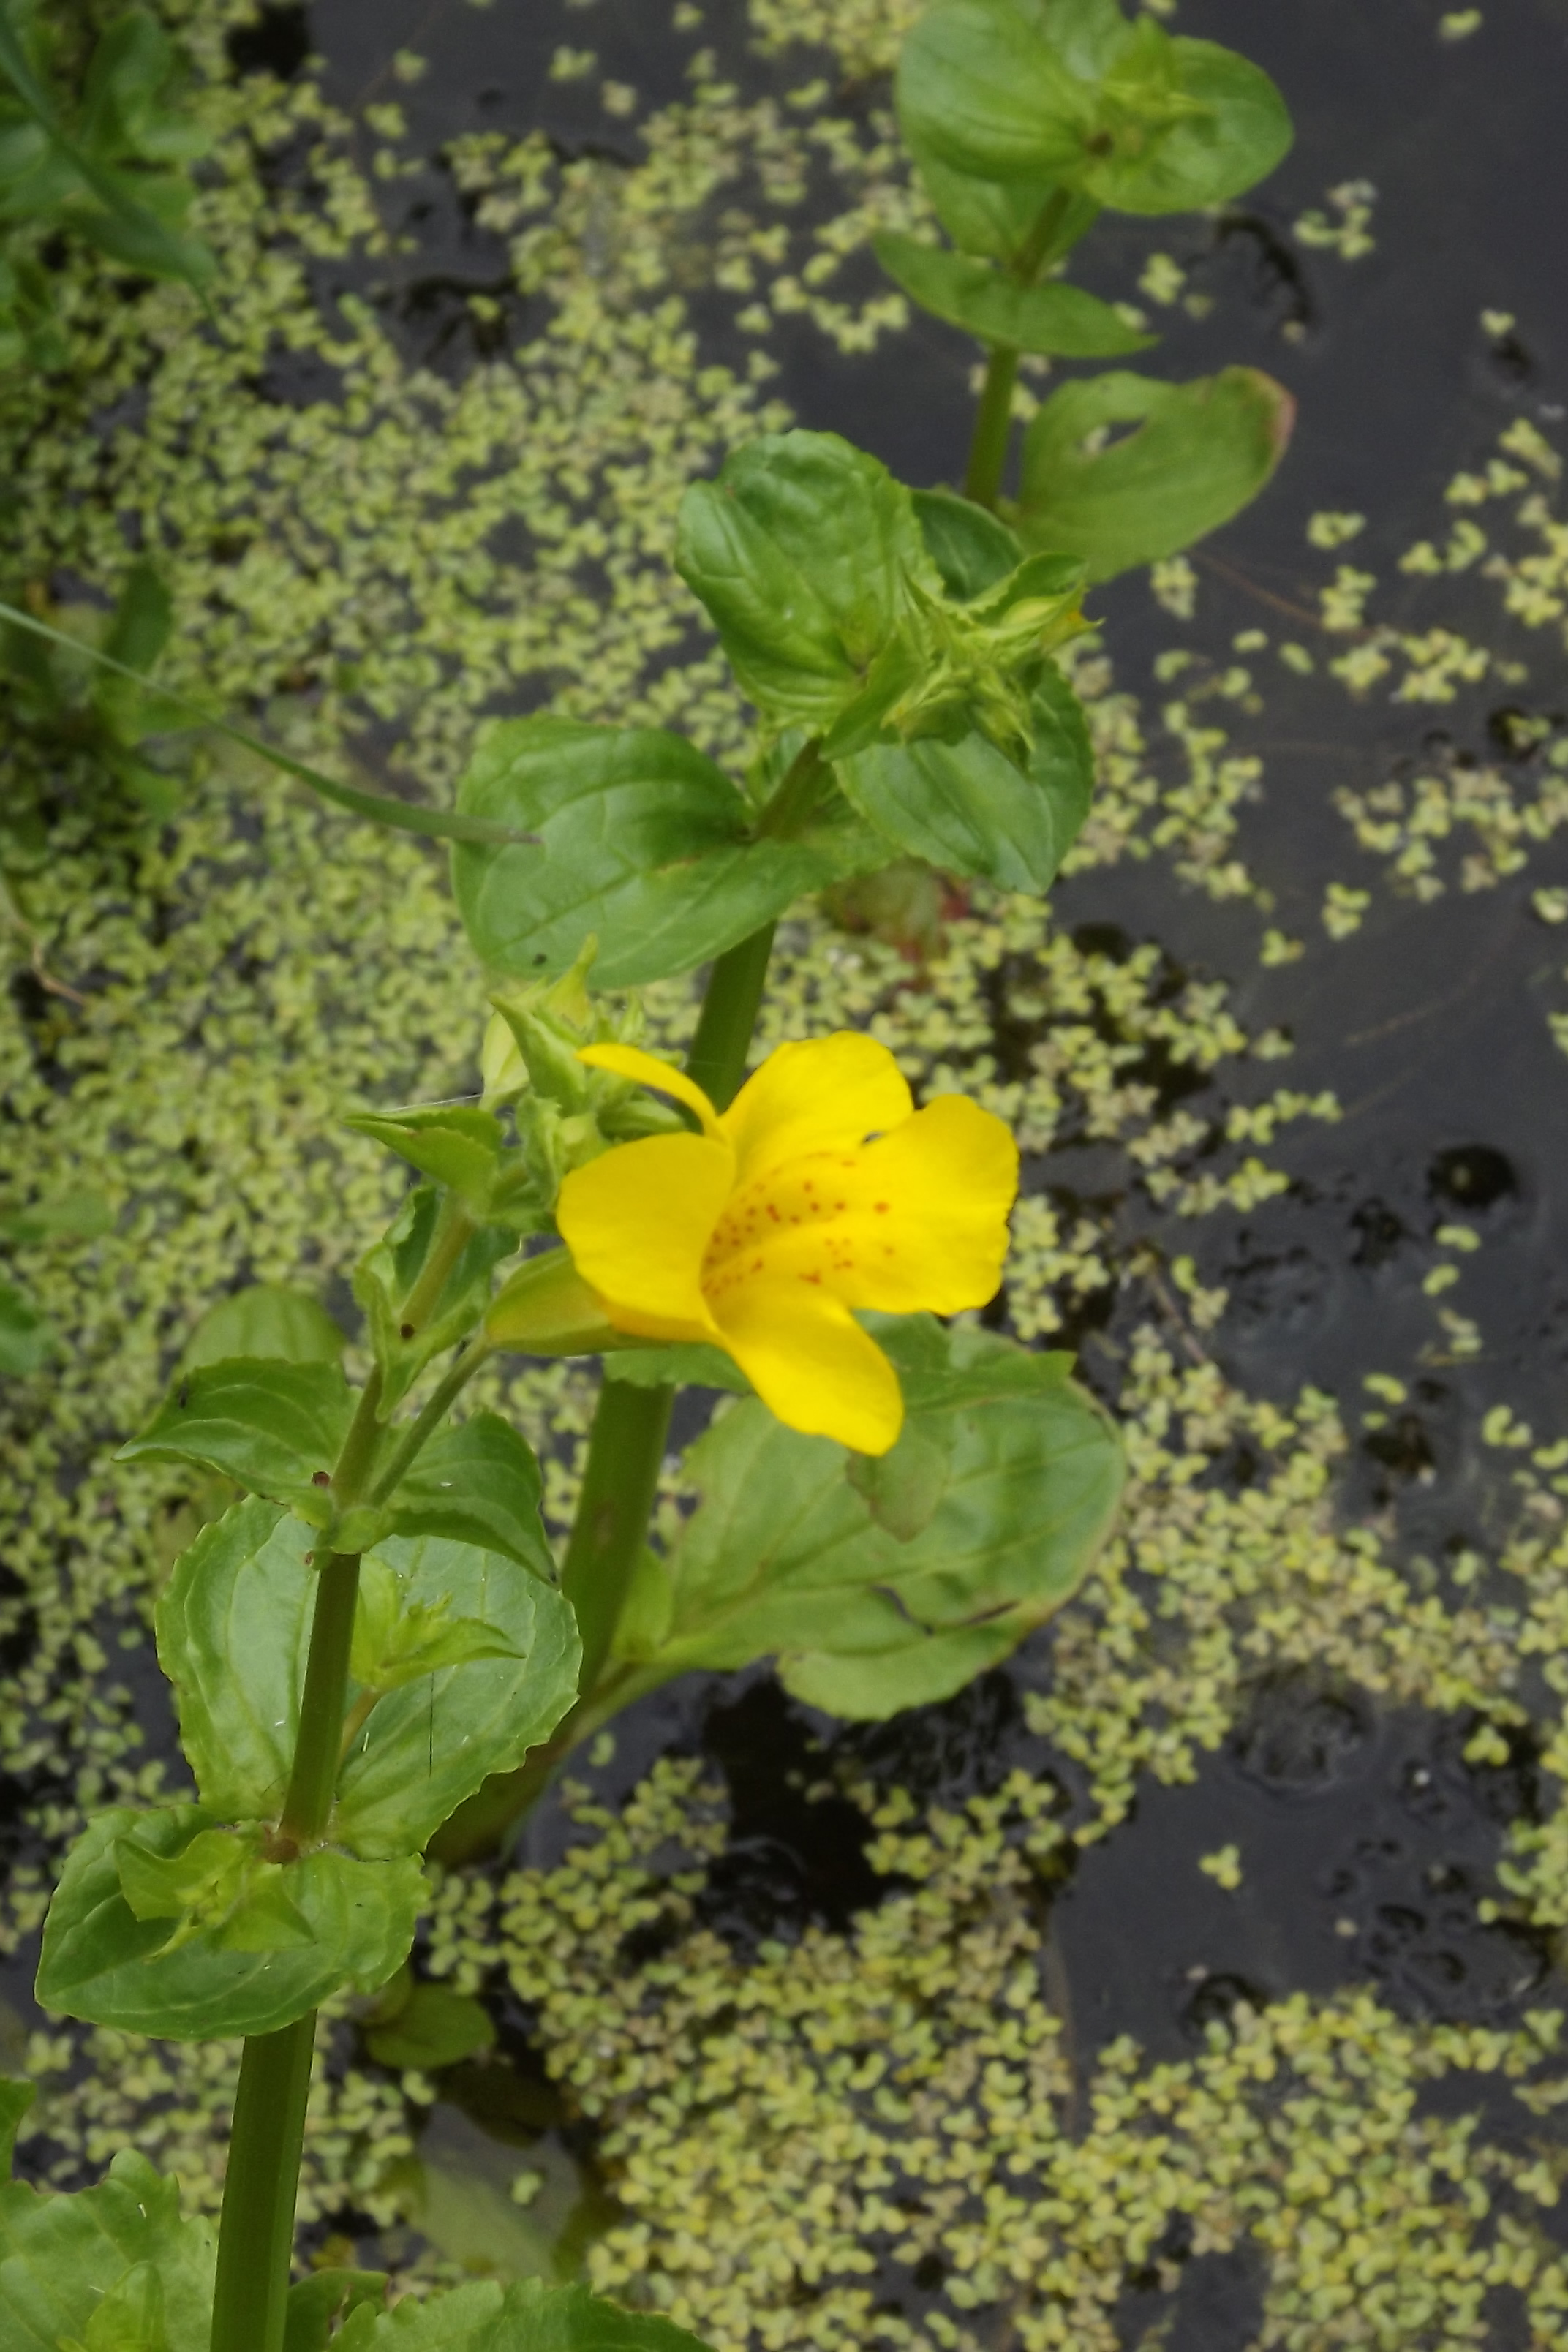 mimulus flower by pond